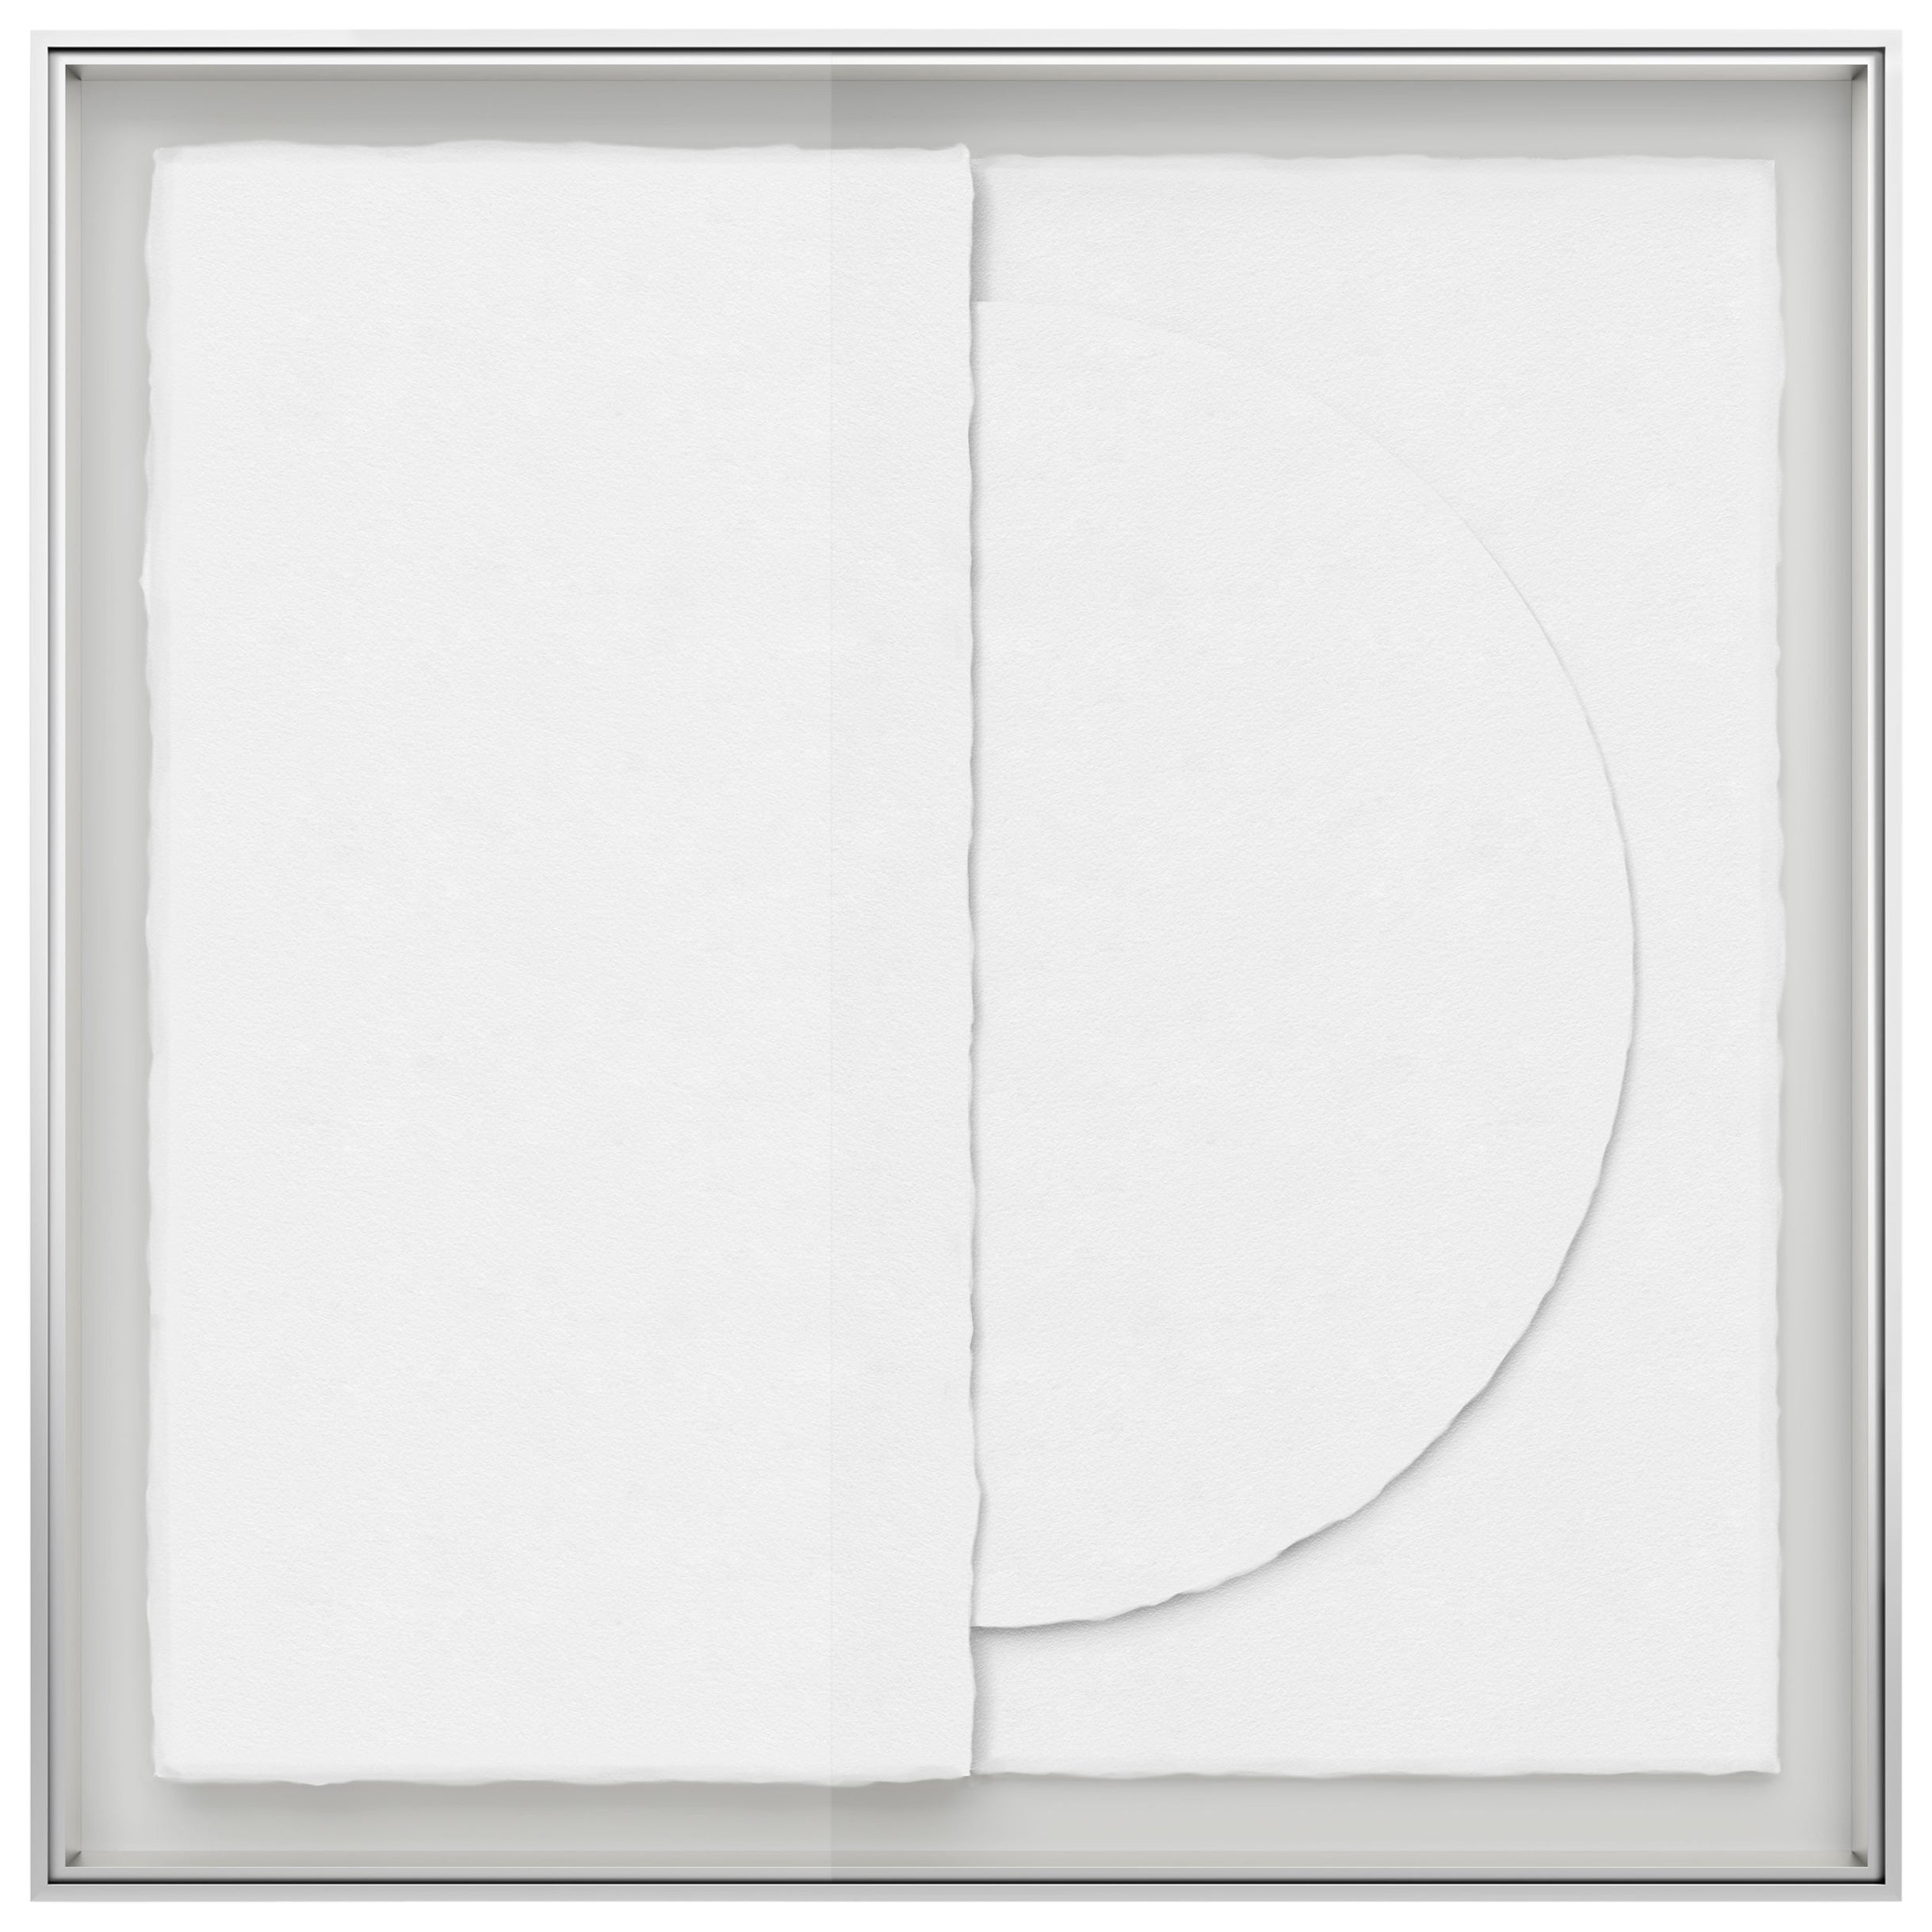 Geometry A02, Mikal Harrsen, Limited Edition of 50 Pieces